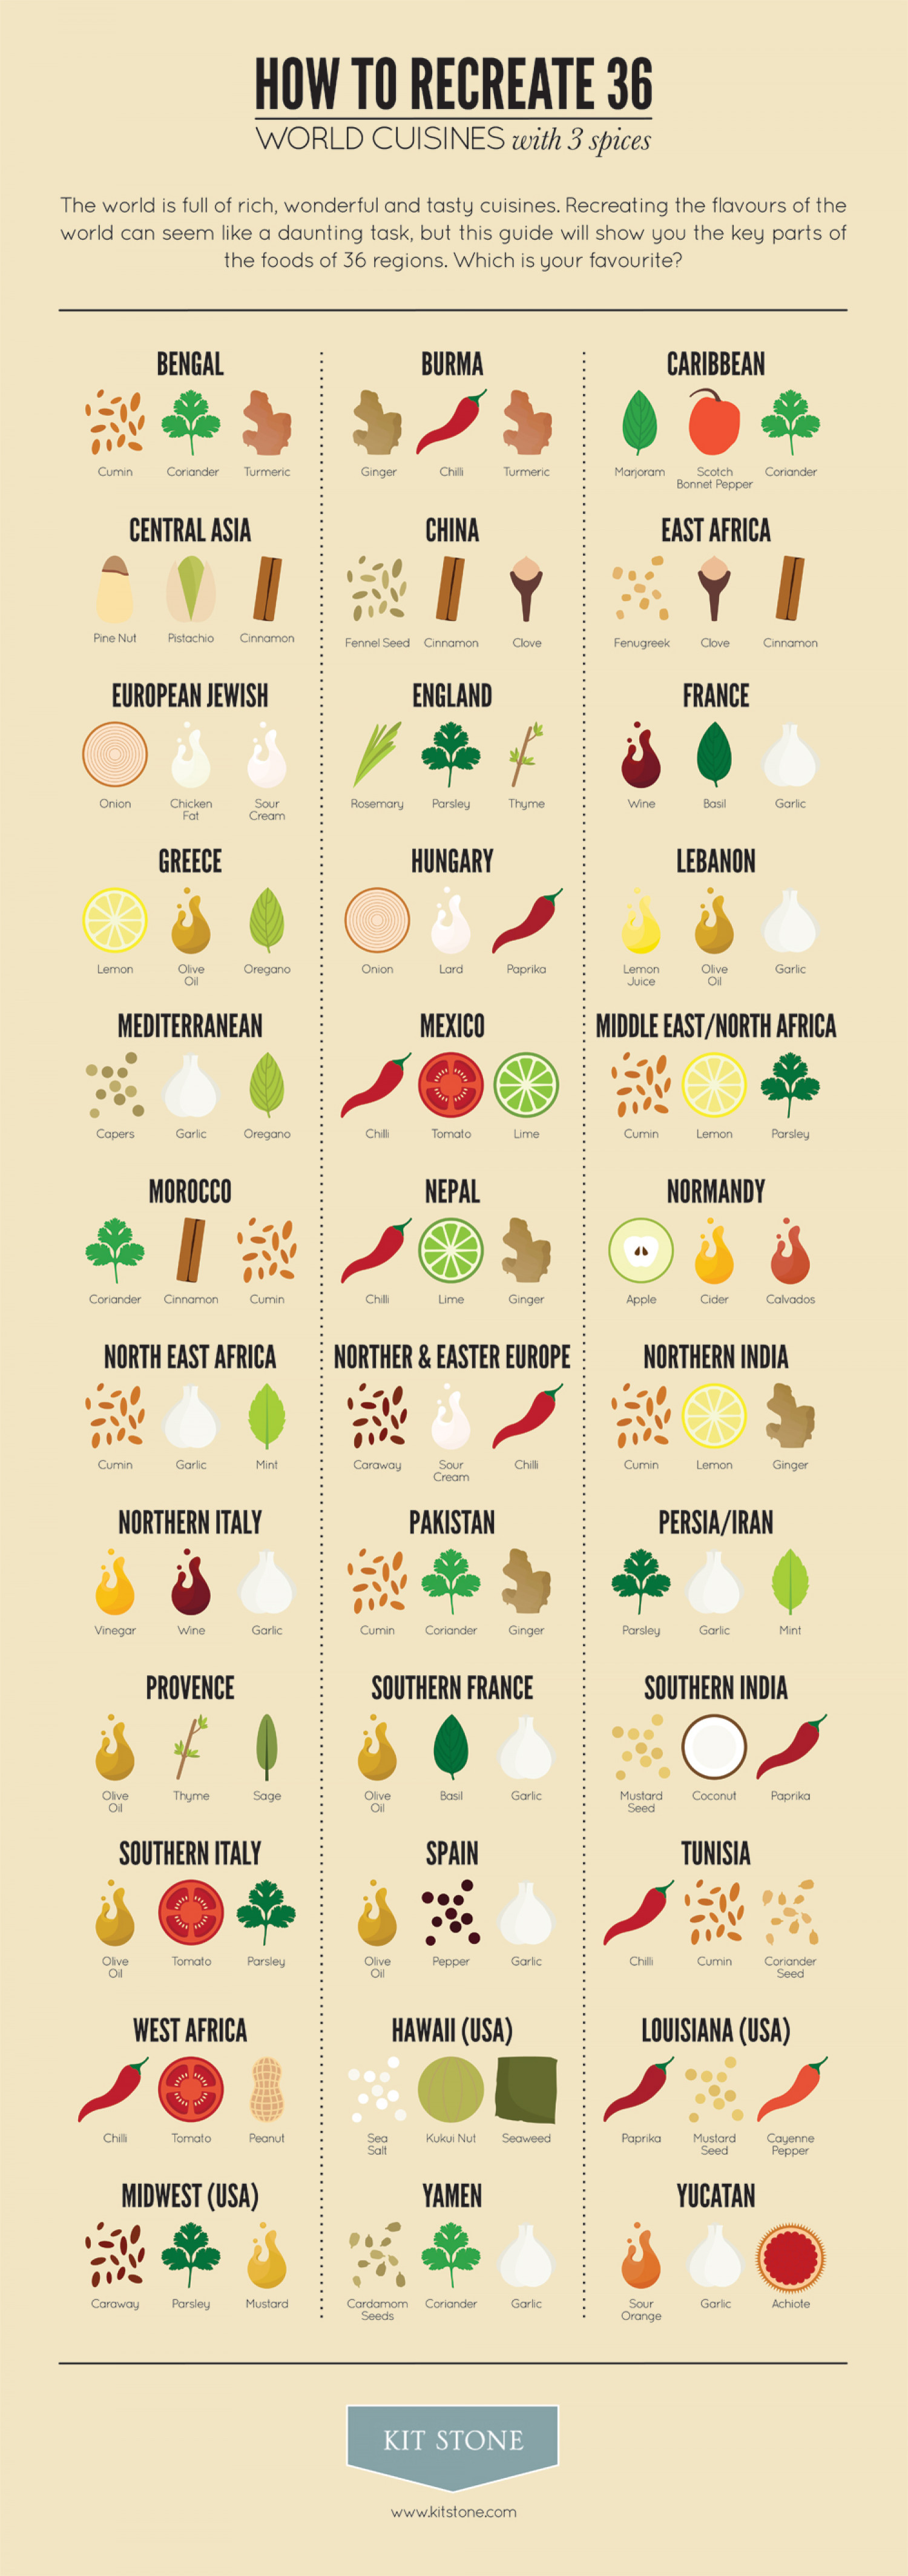 How to Recreate 36 World Cuisines With 3 Spices Infographic